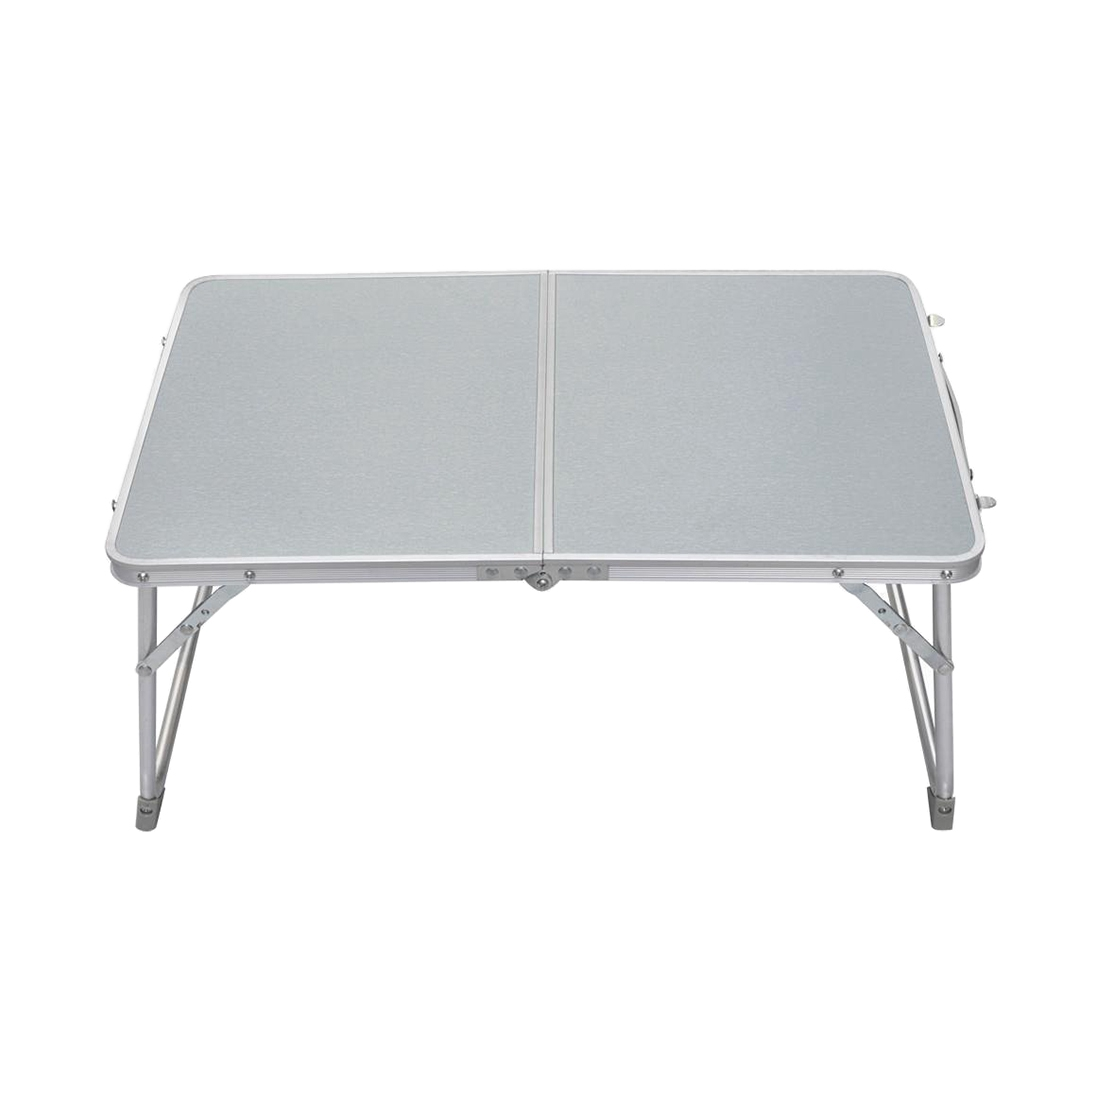 Small 62x41x28cm/24.4x16.1x11 PC Laptop Table Bed Desk Camping Picnic BBQ (Silver White) pc 39